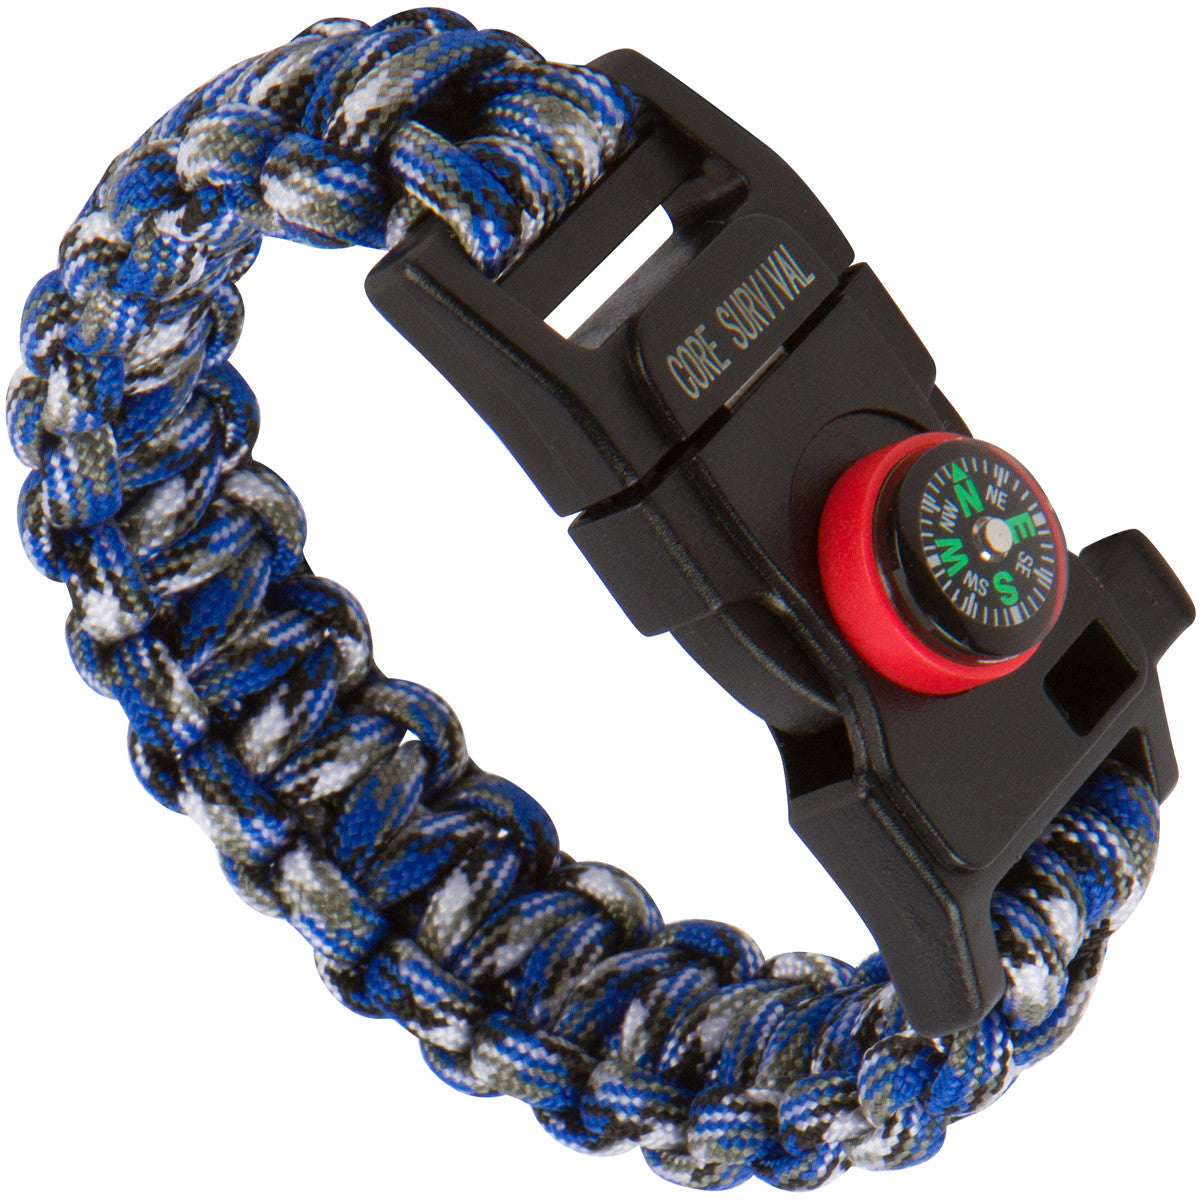 Paracord Survival Bracelet (Medium)